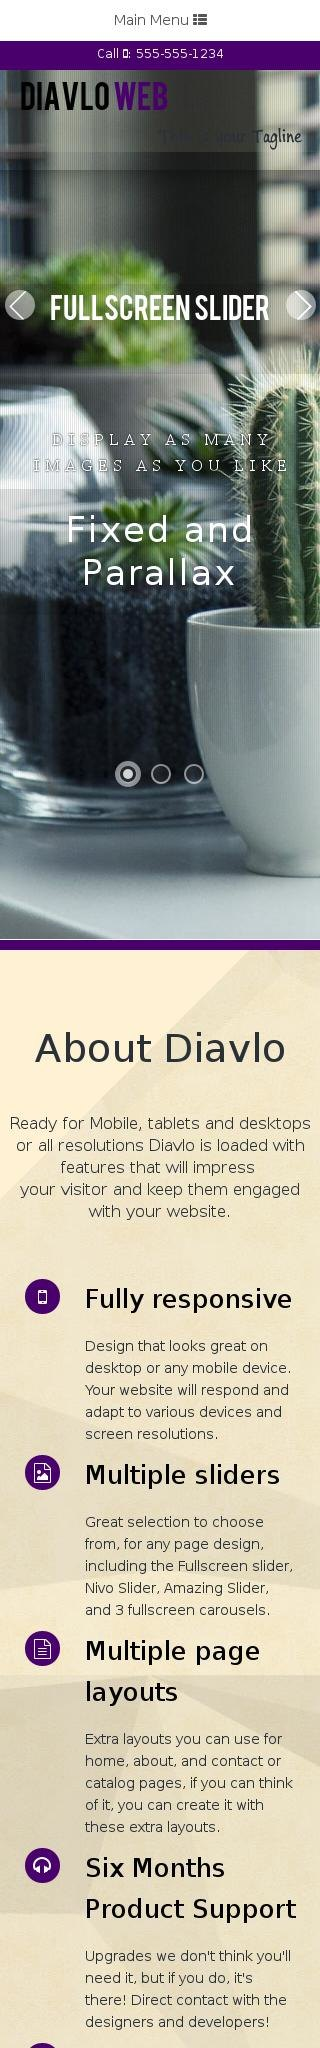 Mobile: Interior-design Web Template